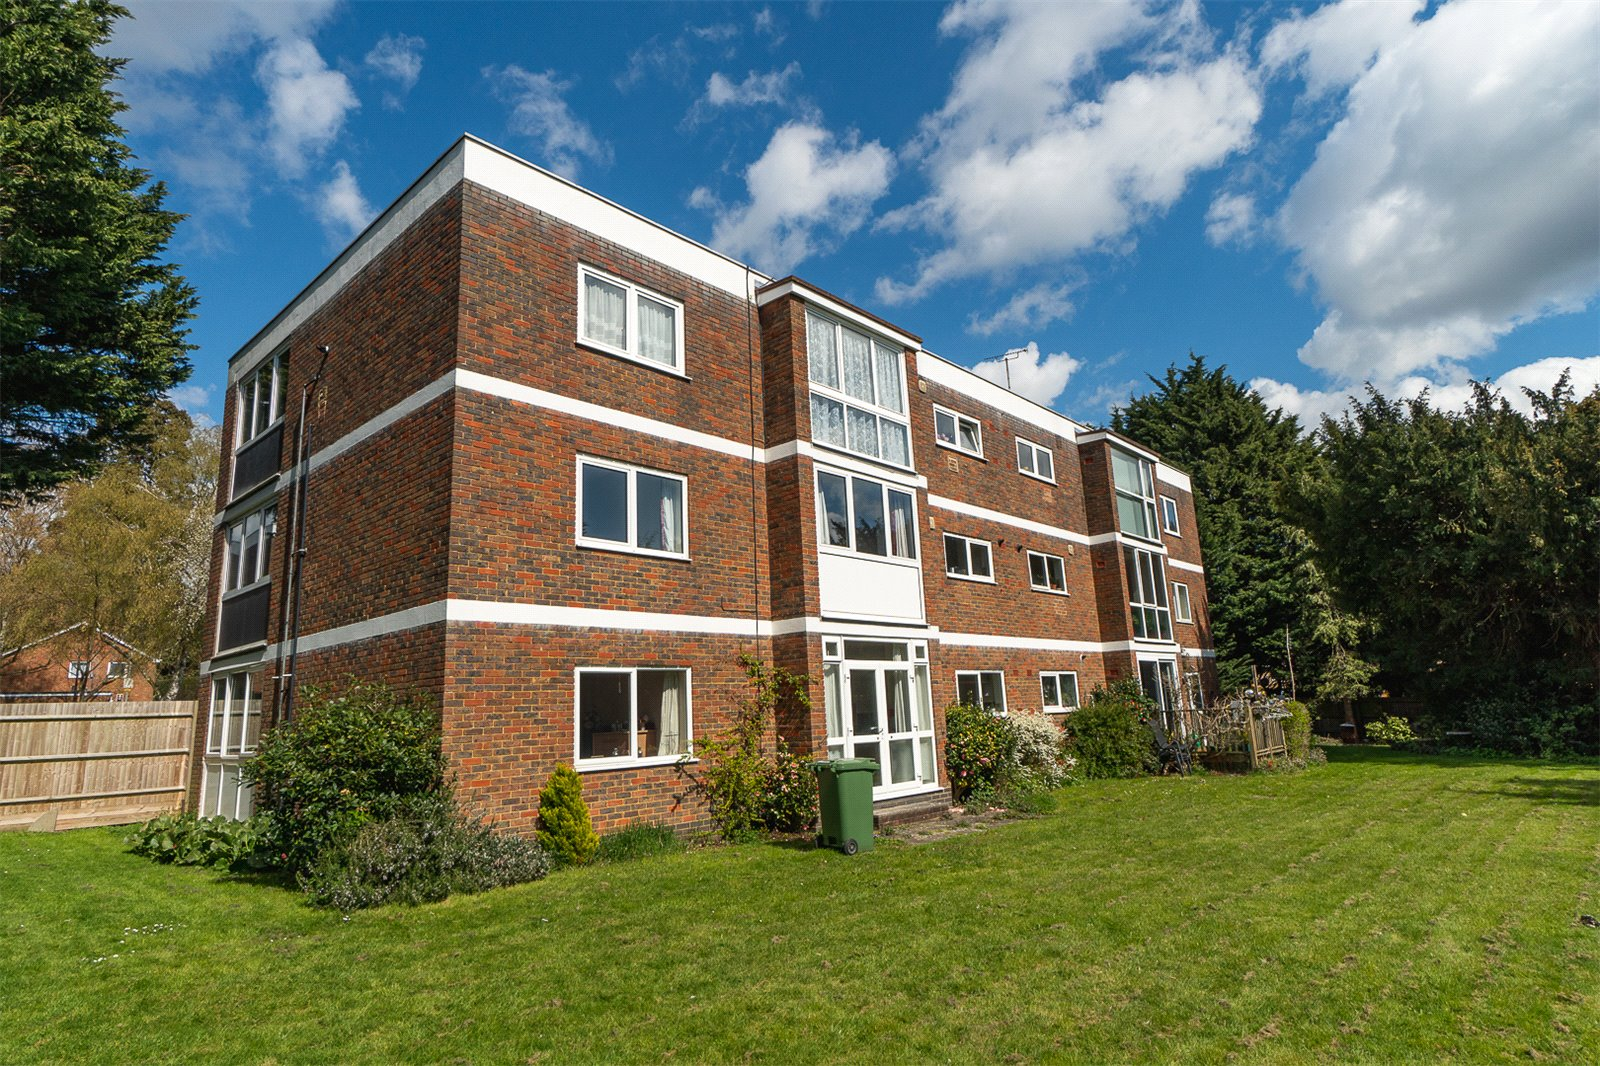 3 bed apartment for sale in Mulberry Court, Maidstone, ME14